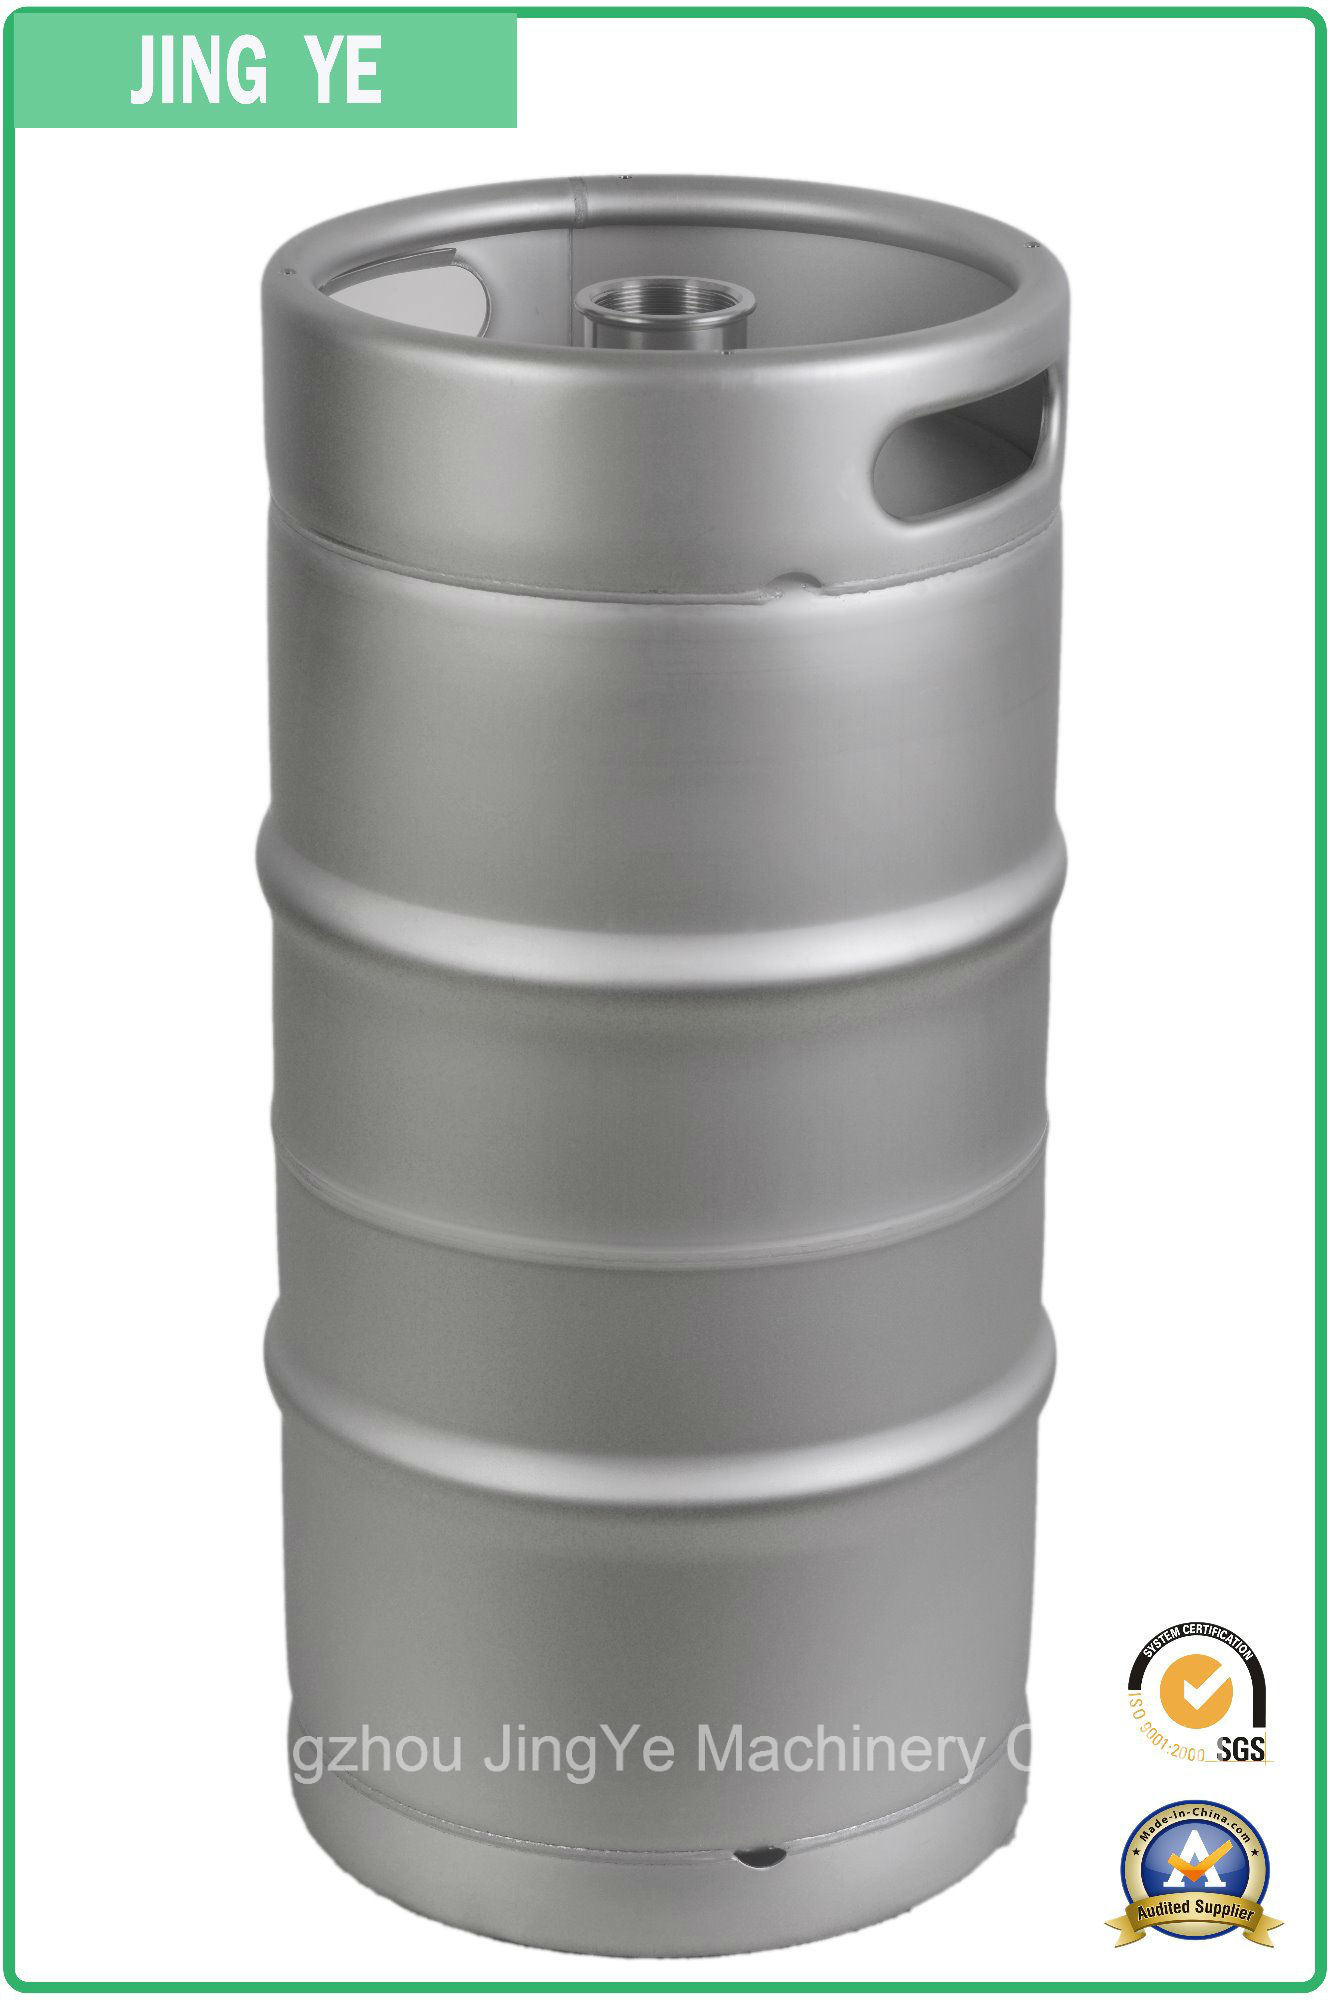 Us 1/4 Beer Keg 29.8L